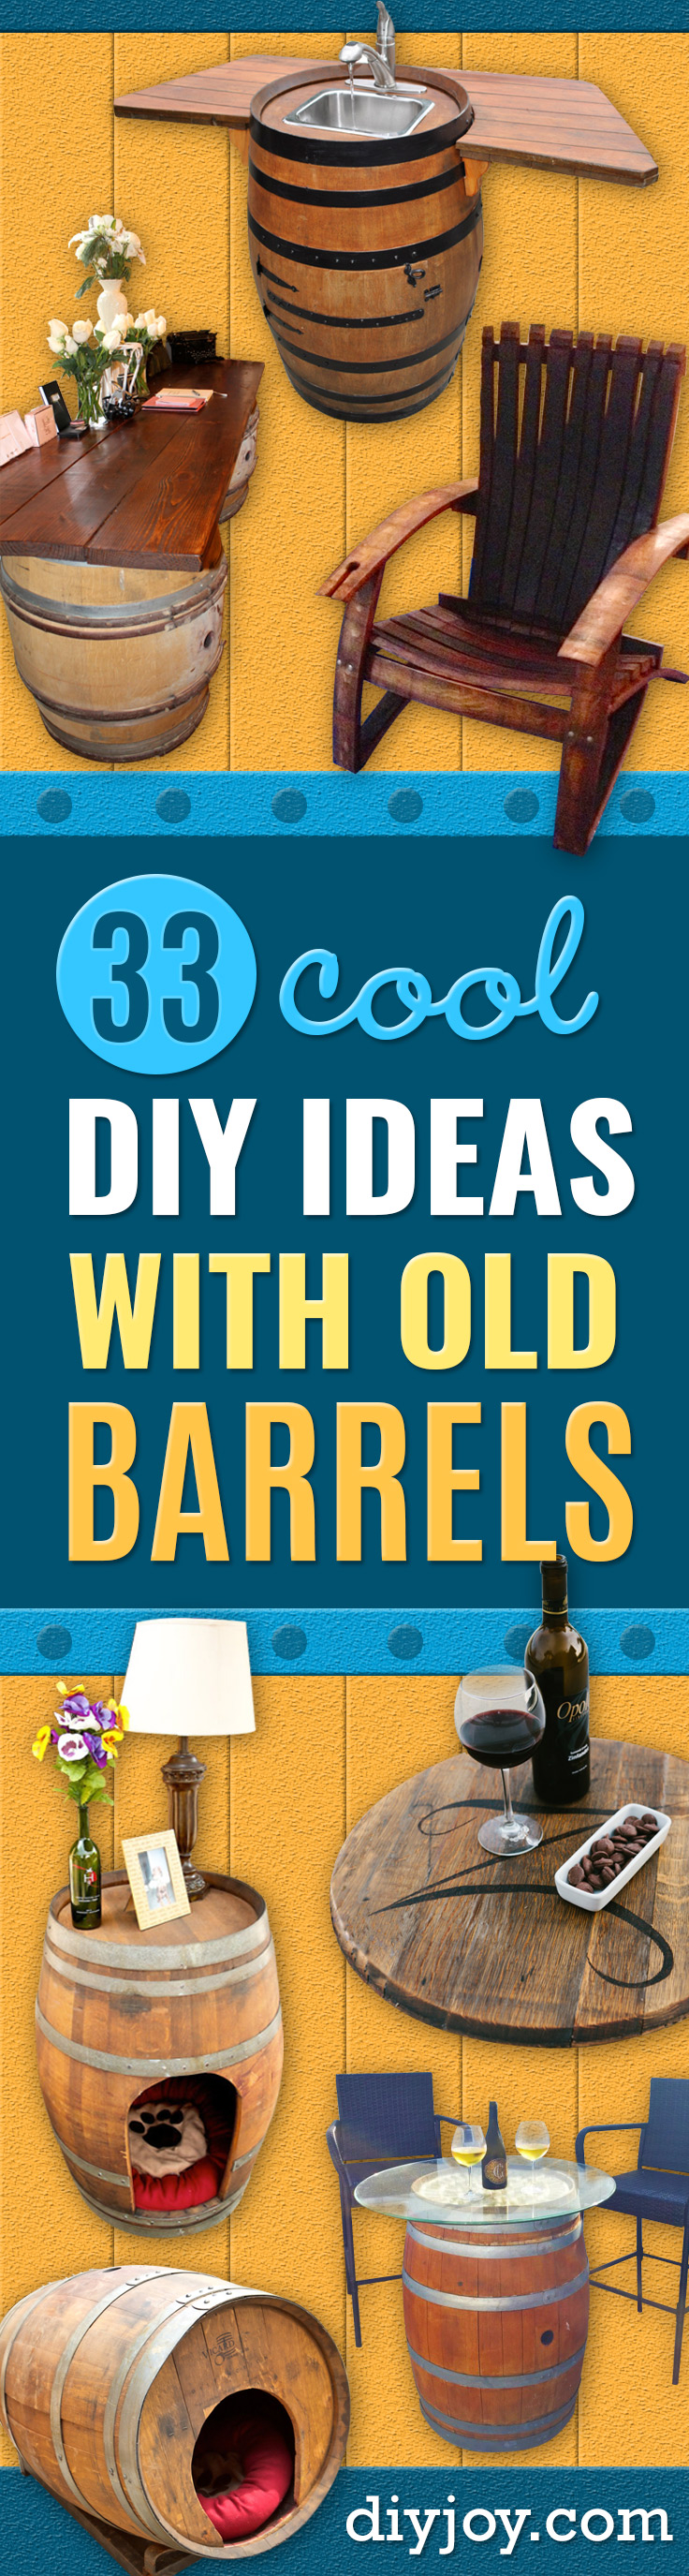 DIY Ideas With Old Barrels - Rustic Farmhouse Decor Tutorials and Projects Made With a Barrel - Easy Vintage Home Decor for Kitchen, Living Room and Bathroom - Creative Country Crafts, Dog Beds, Seating, Furniture, Patio Decor and Rustic Wall Art and Accessories to Make and Sell tp://diyjoy.com/diy-projects-old-barrels